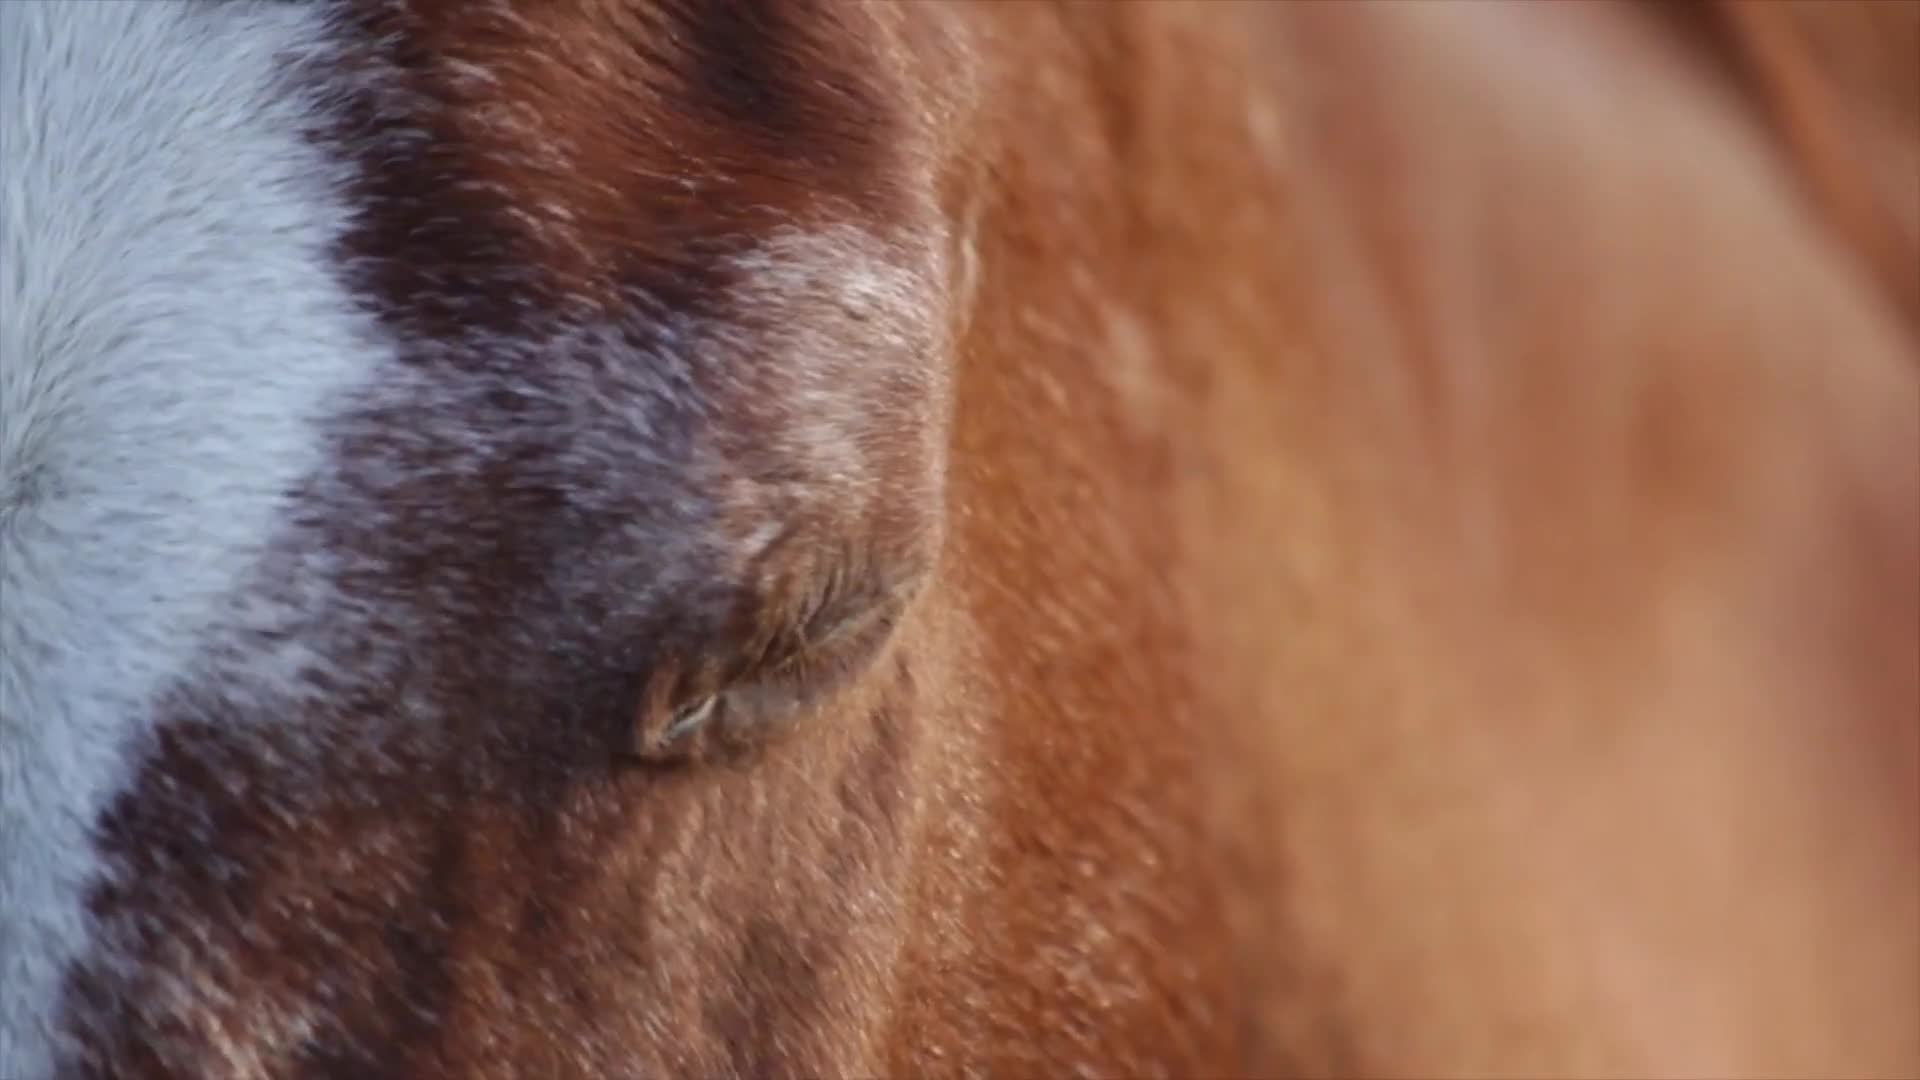 Close up video of a horse